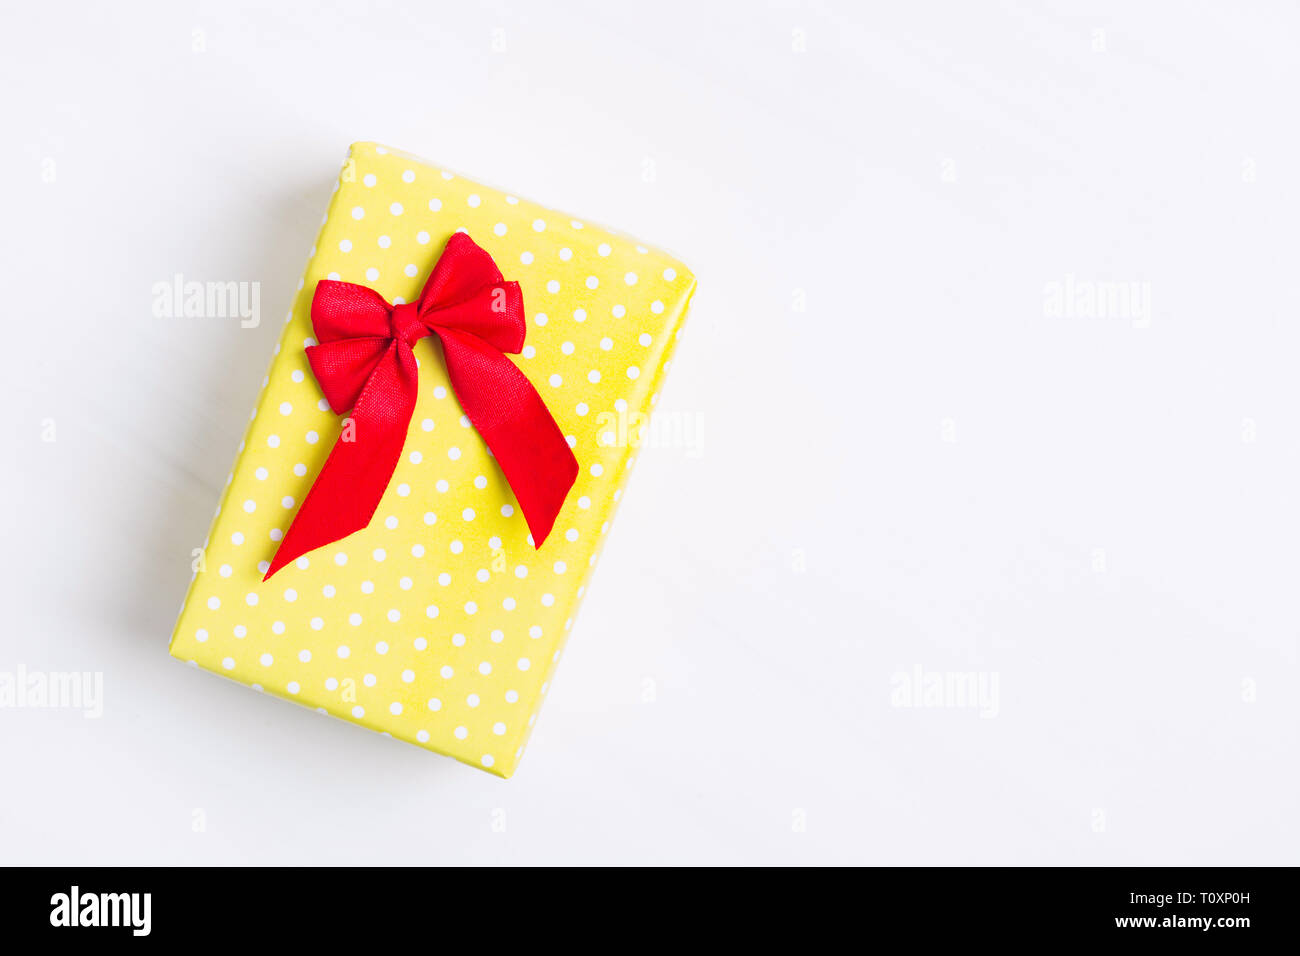 Yellow spotted present with red bow over white textured background, happy birthday, holiday gift, copy space, flat lay style Stock Photo